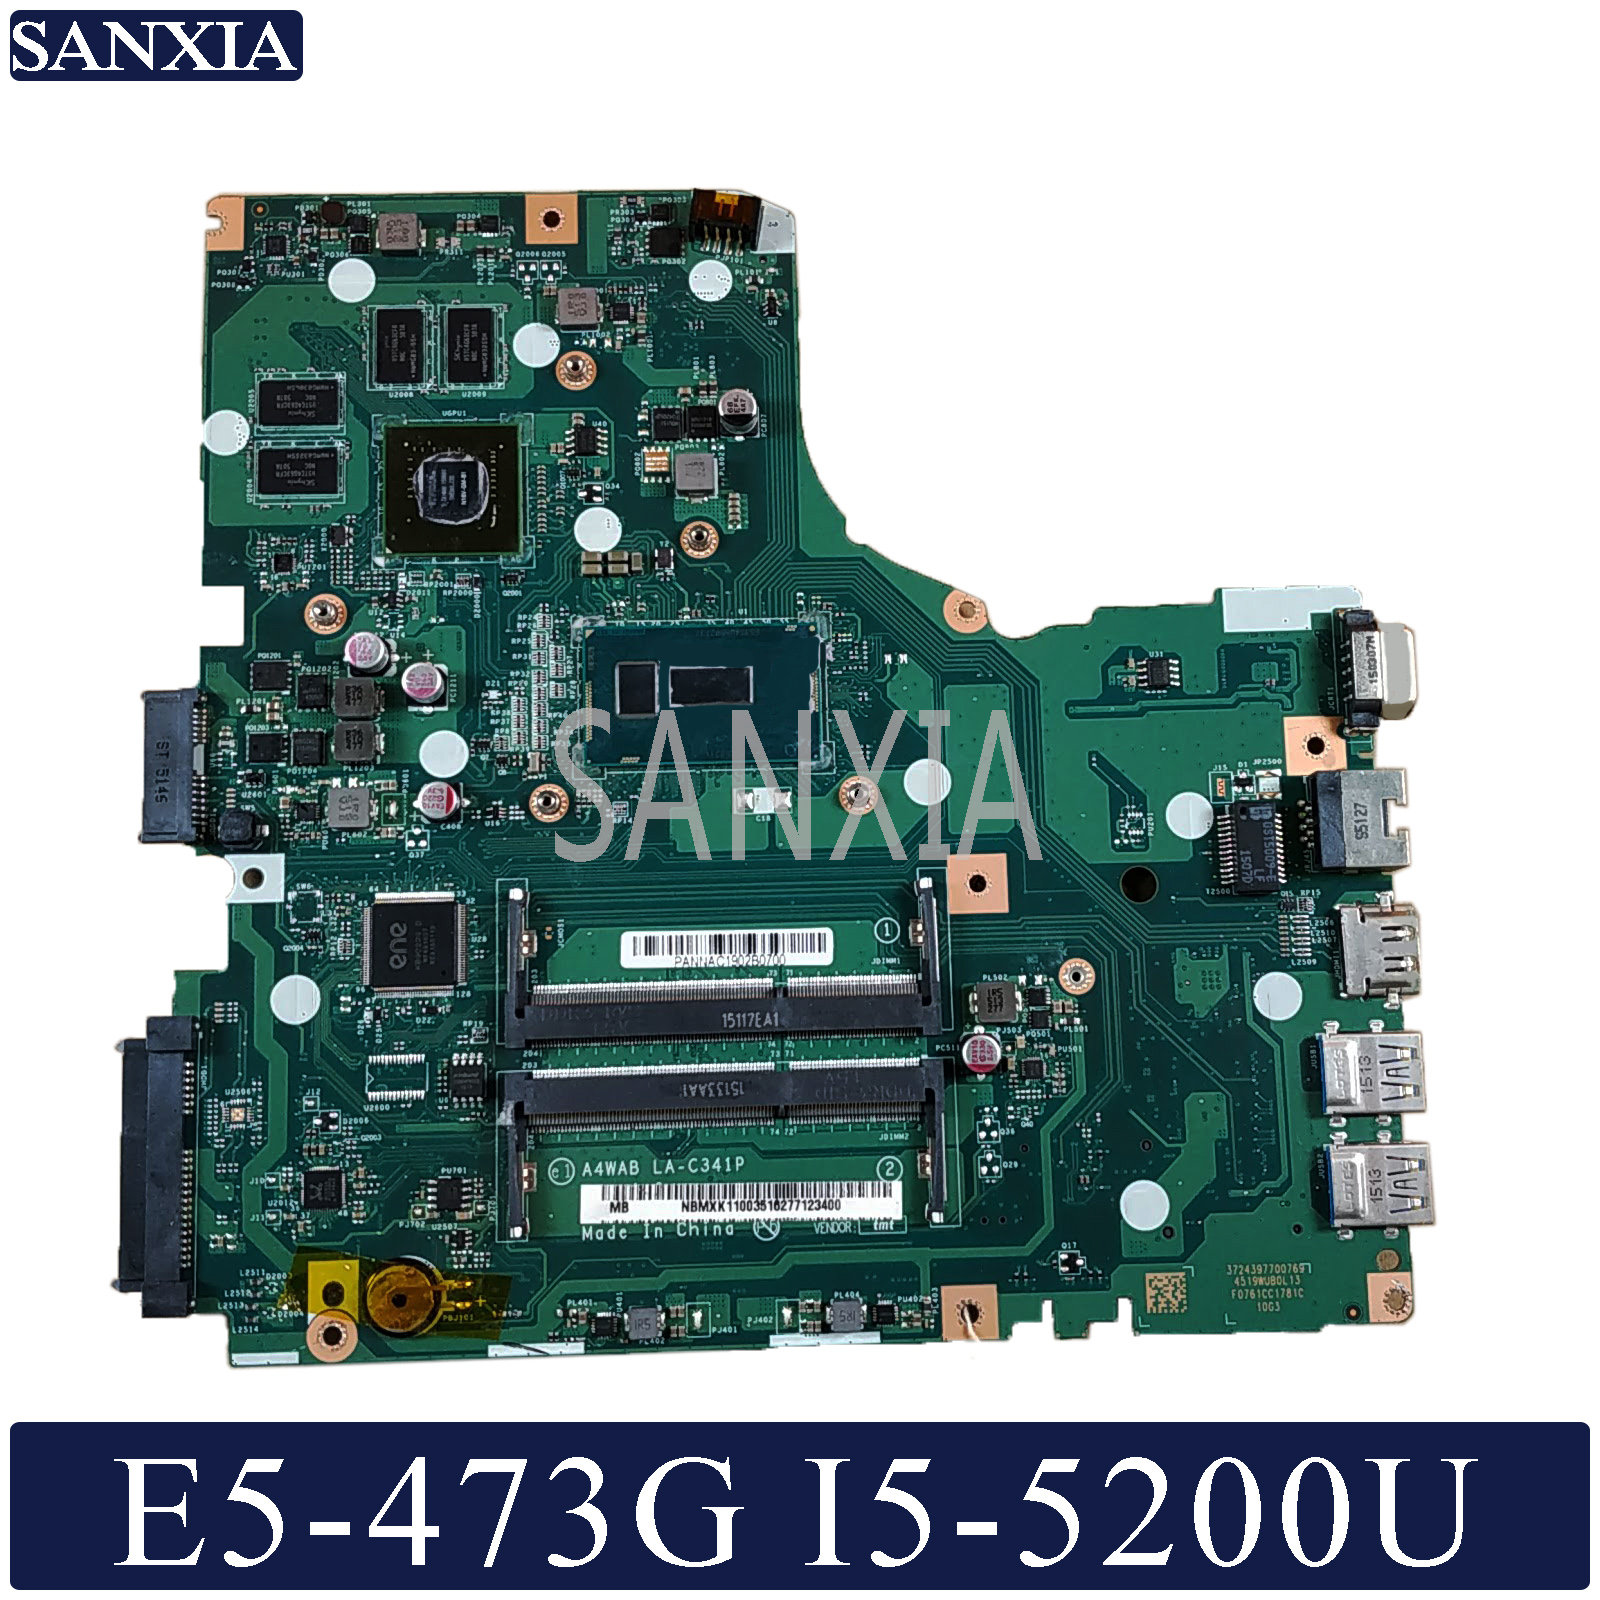 KEFU LA C341P Laptop motherboard for font b Acer b font Aspire E5 473G Test original